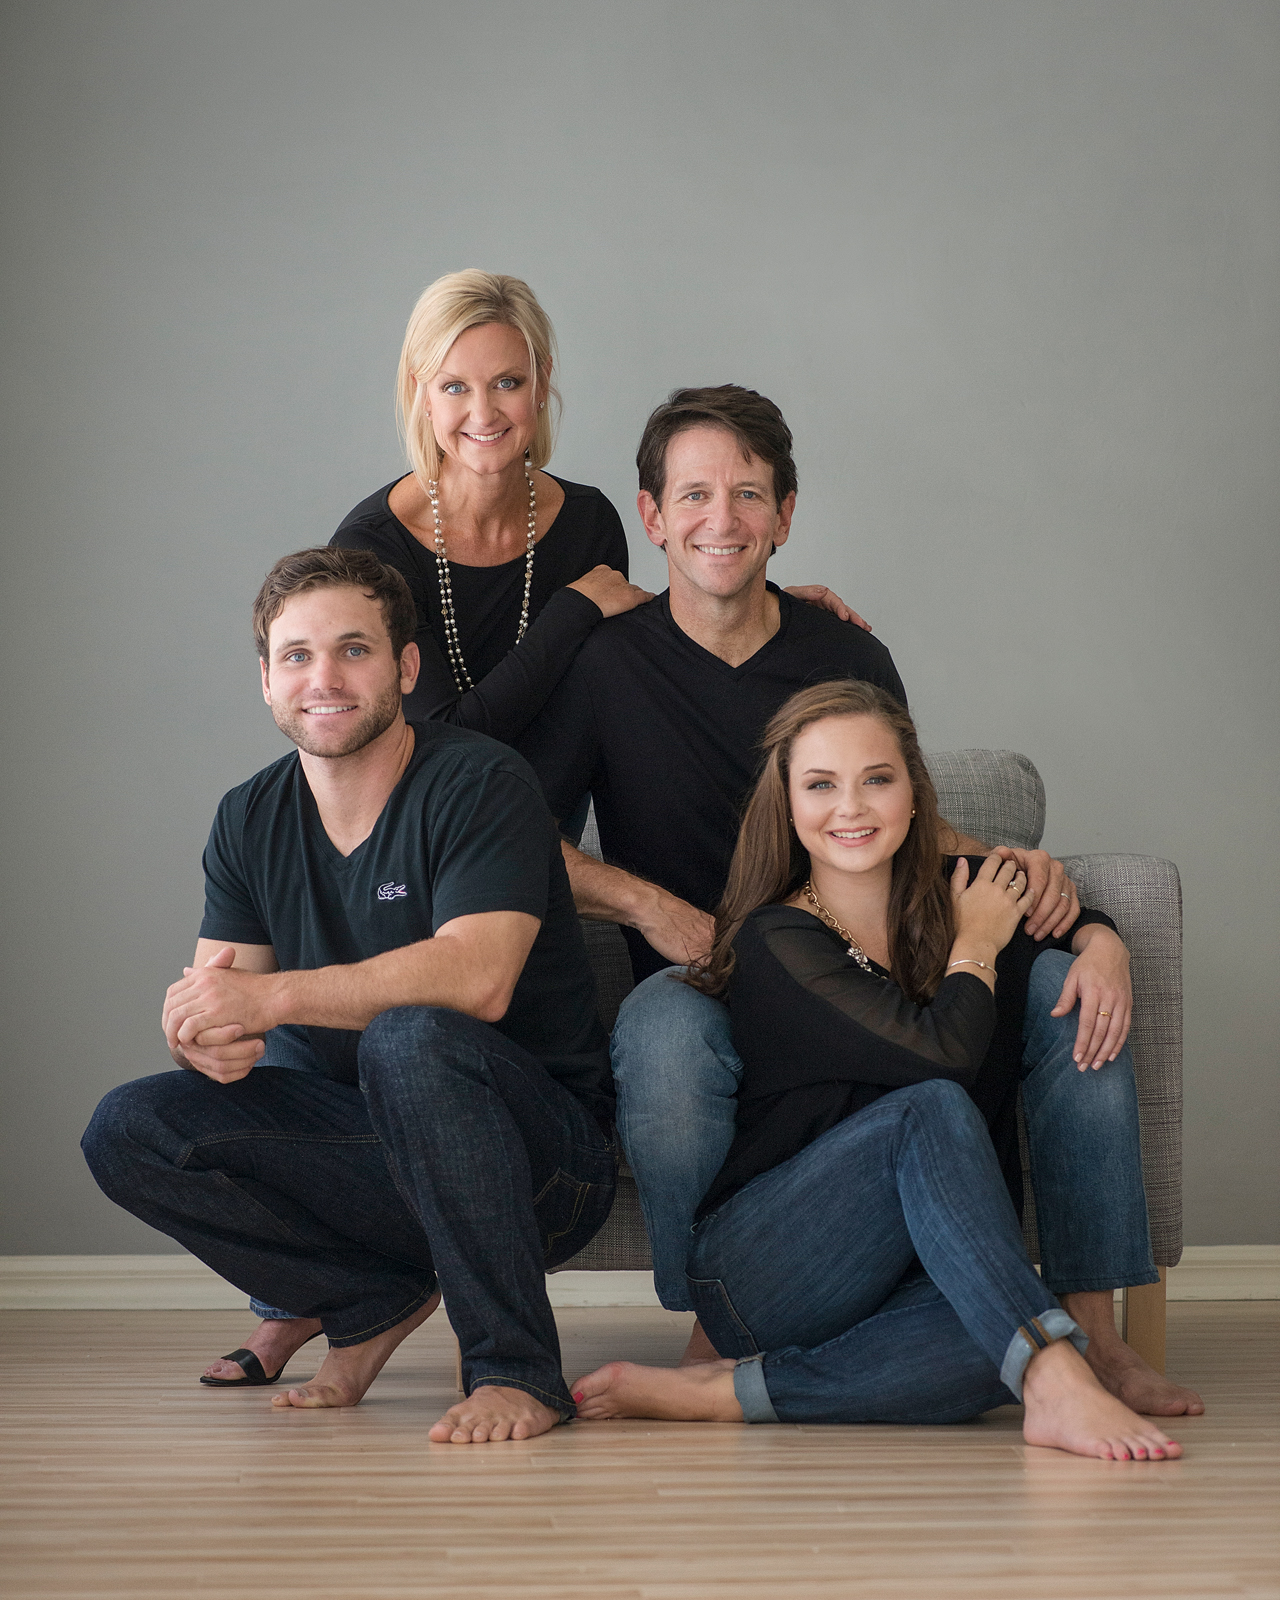 20-family-seated-pose-black-shirts-jeans-studio.jpg